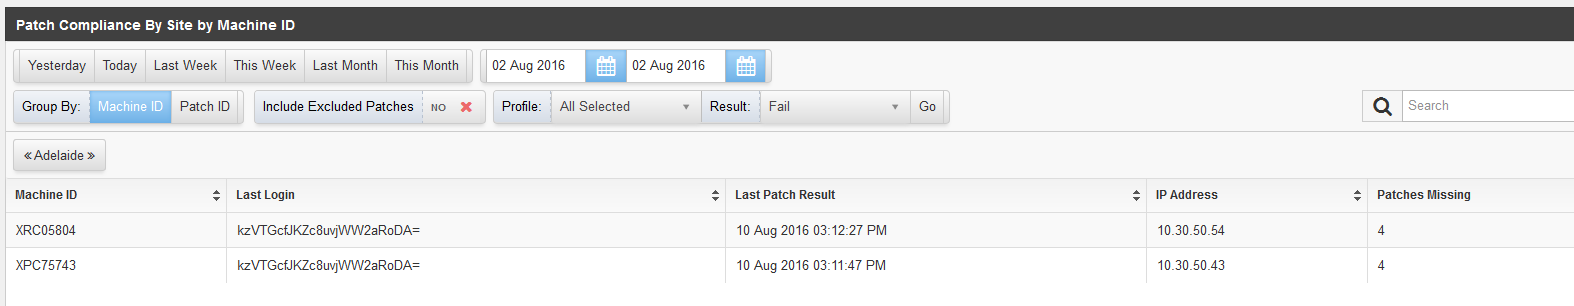 Patch Compliance by Site my Machine ID